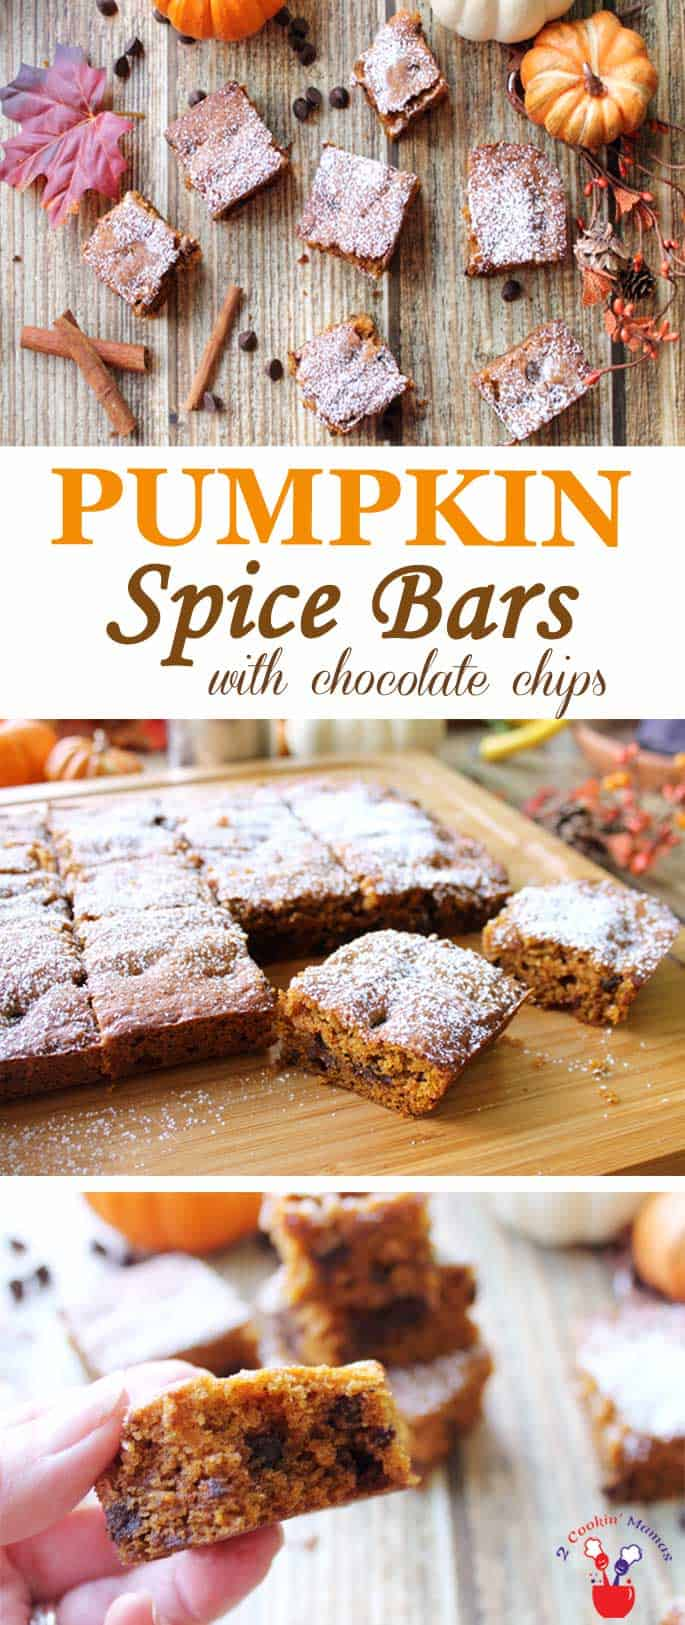 Pumpkin Chocolate Spice Bars | 2 Cookin Mamas Spicy, moist pumpkin chocolate spice bars, dotted with chocolate chips, will have you thinking fall is the best season of all. Quick & easy to make and great for snacks or dessert. #dessert #pumpkin #recipe